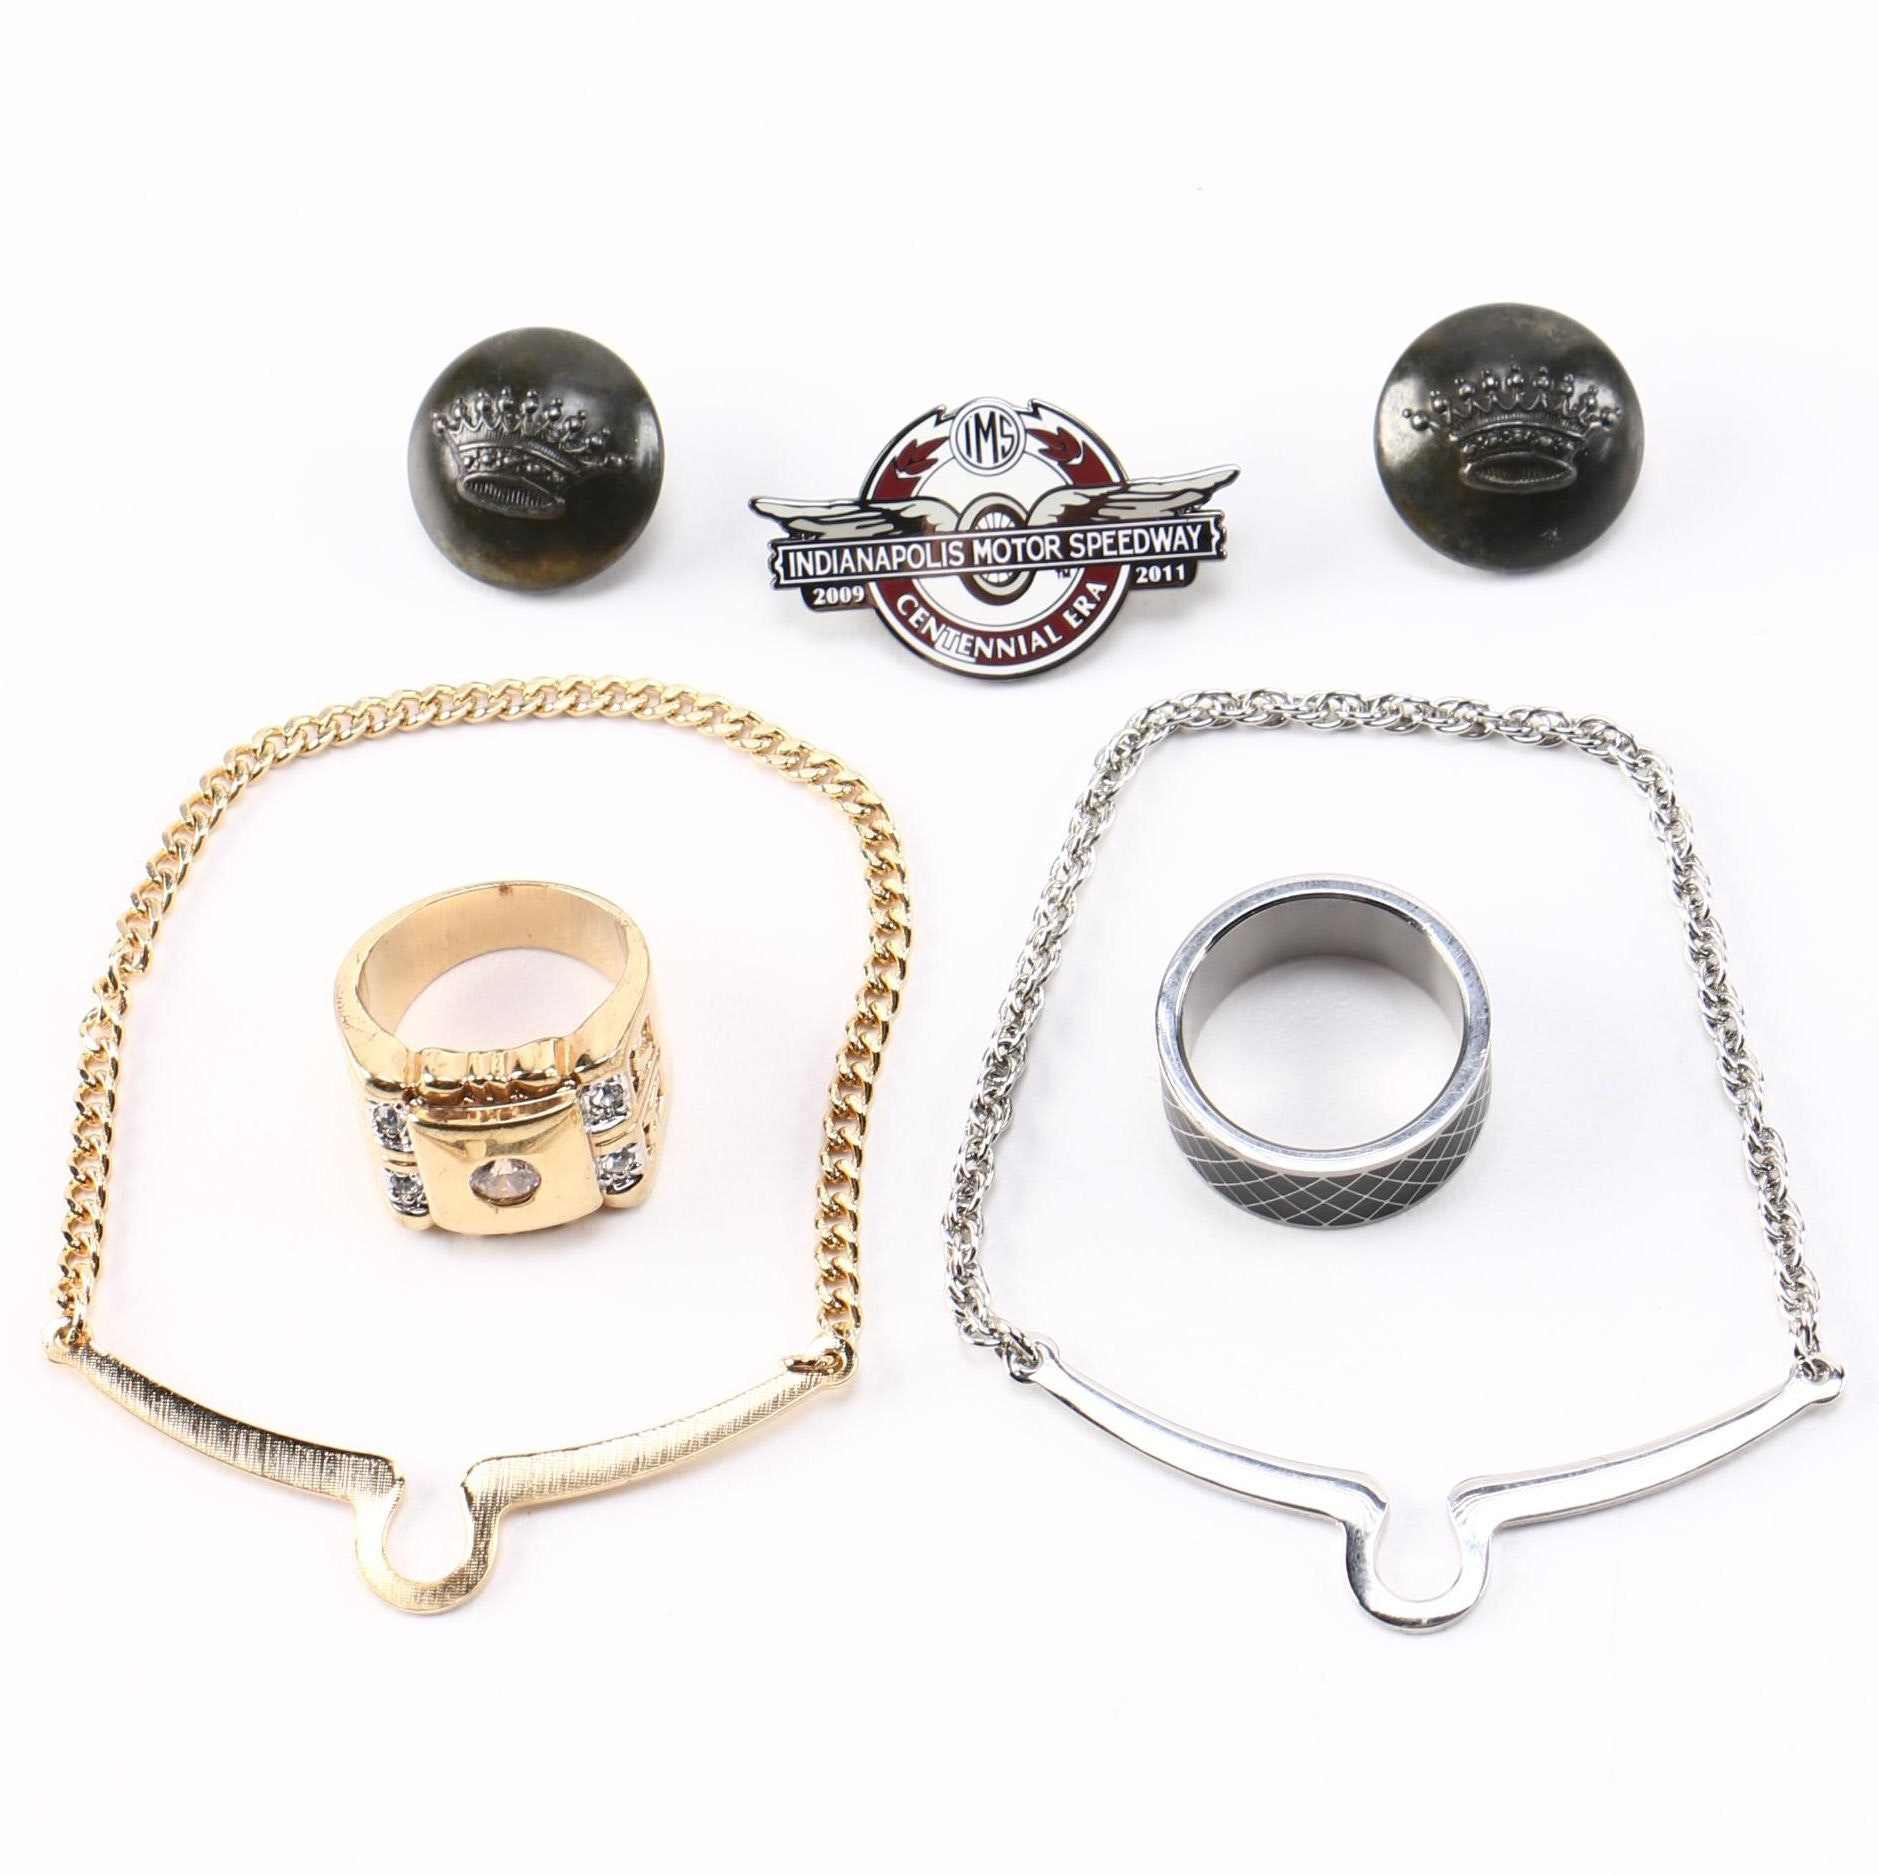 Men's Accessories and Rings